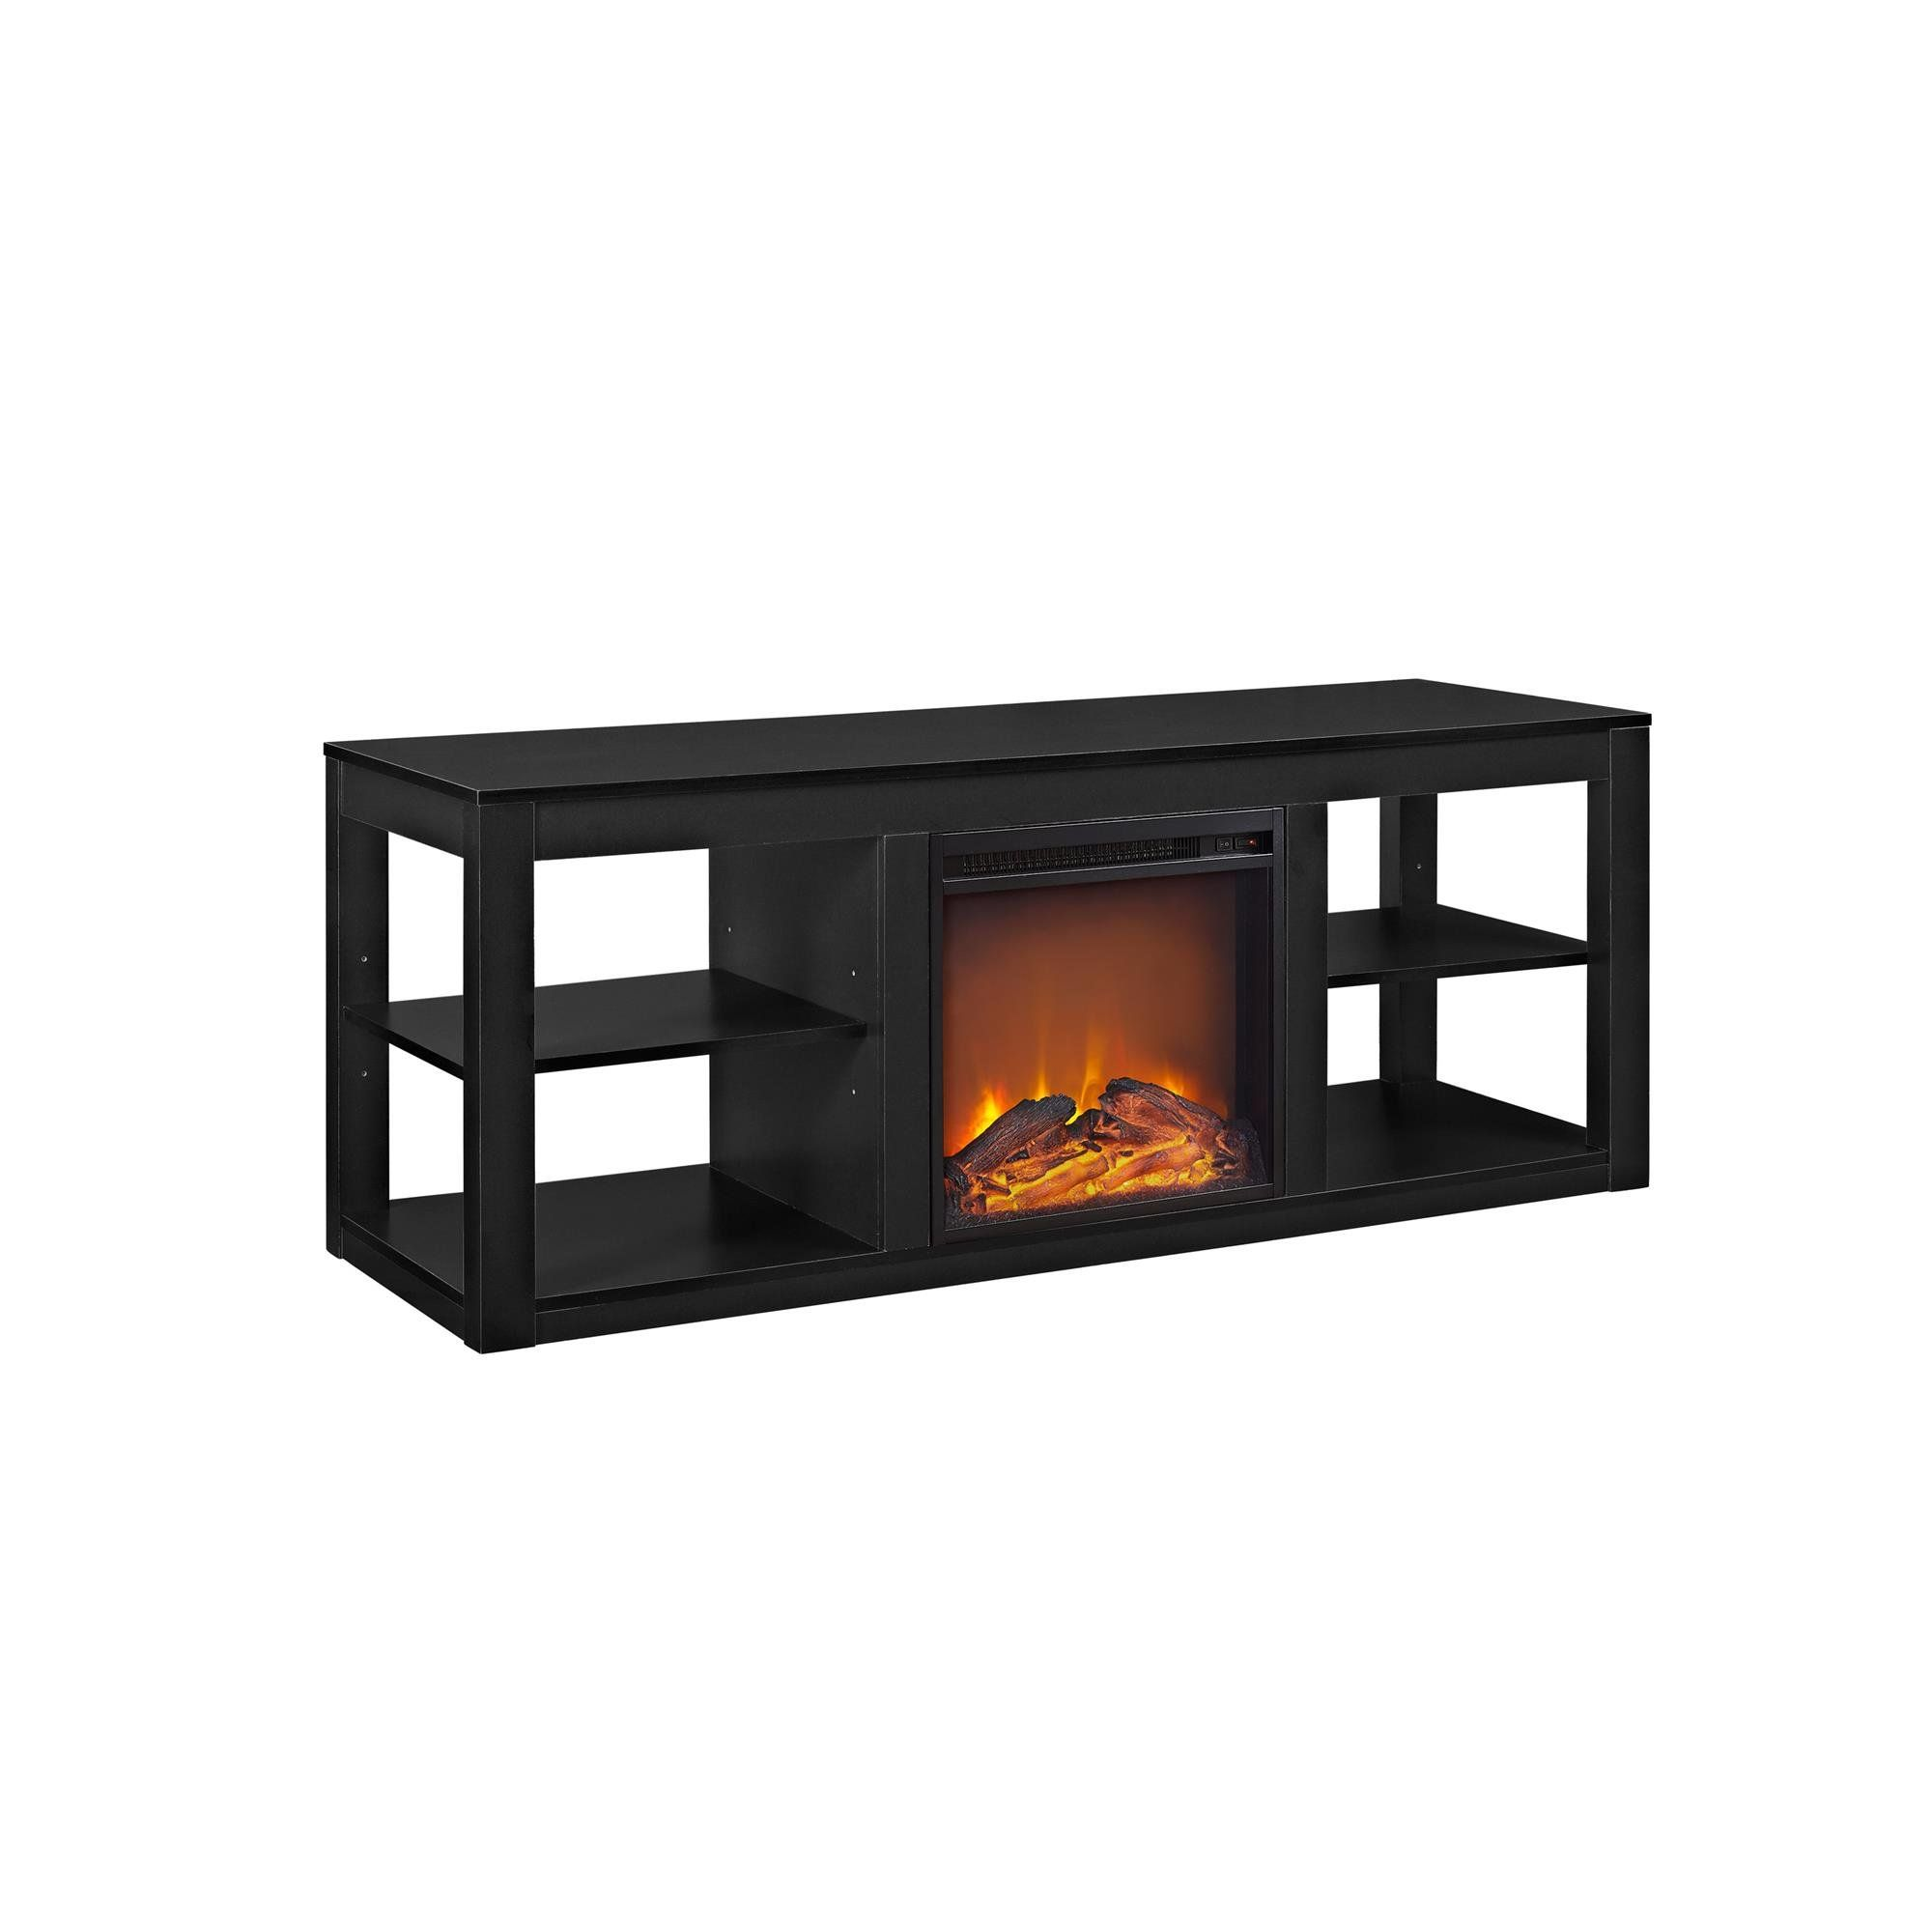 Altra furniture parsons electric fireplace tv stand for tvs up to